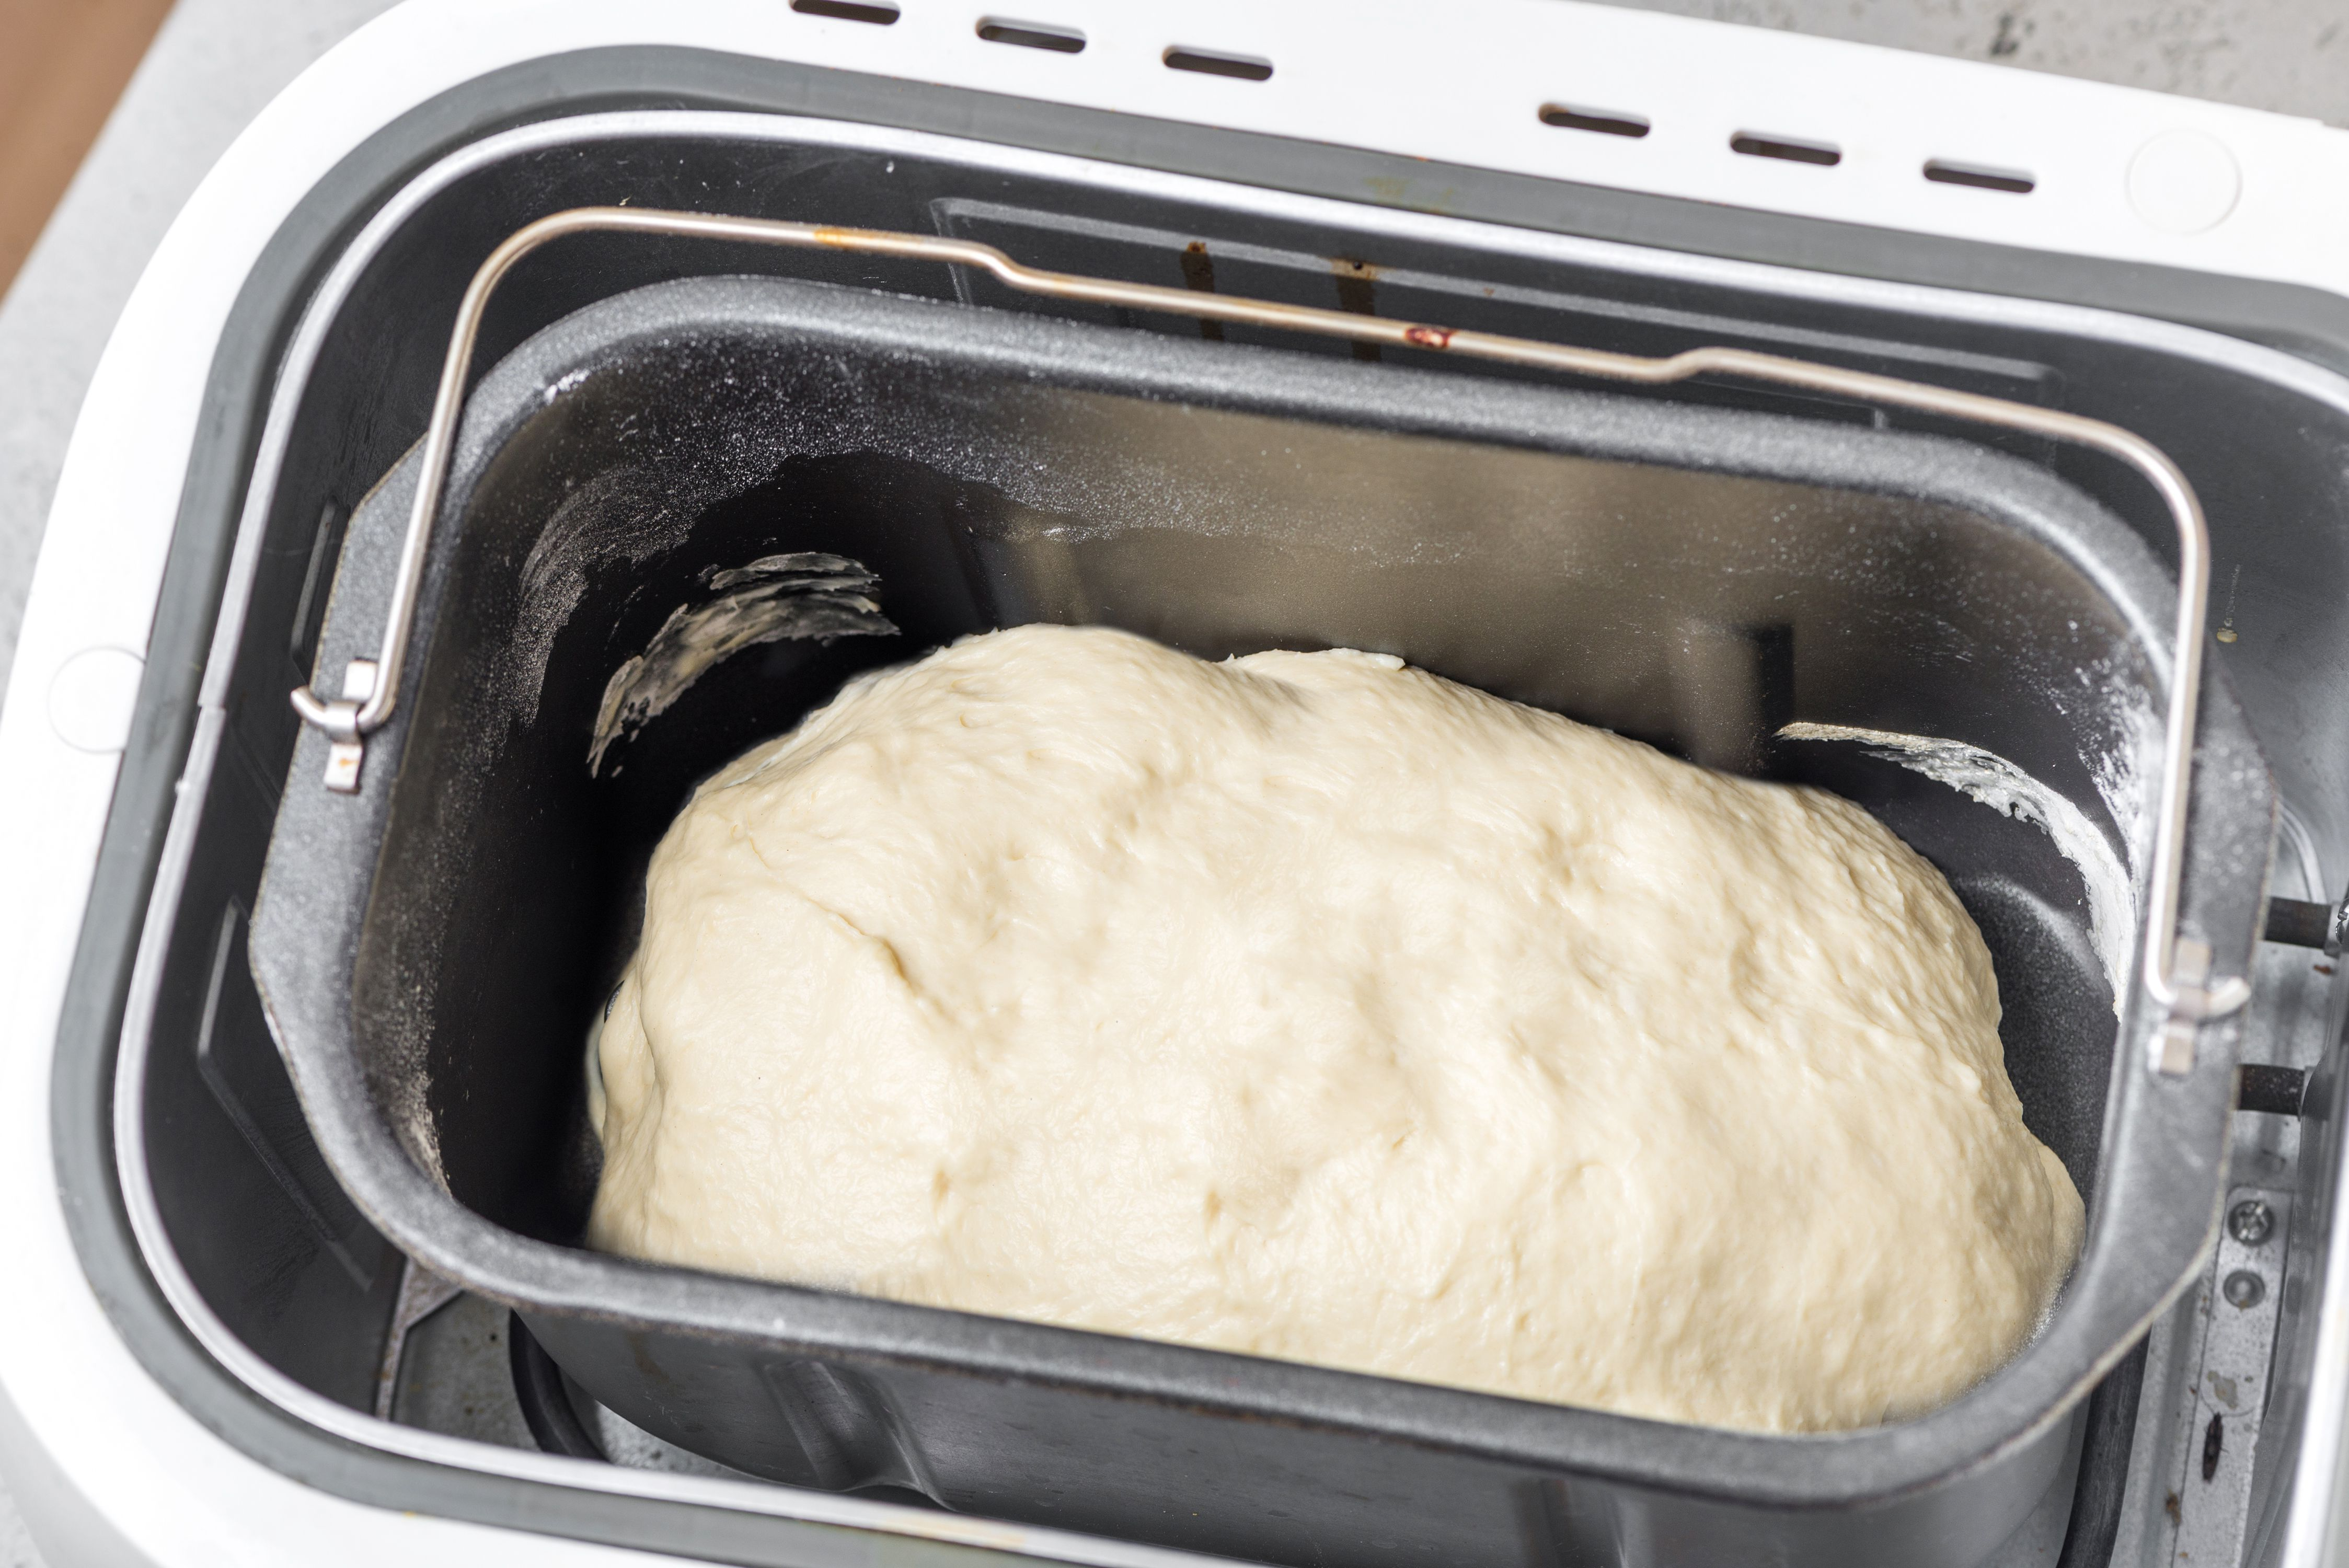 Dough forming in the bread machine